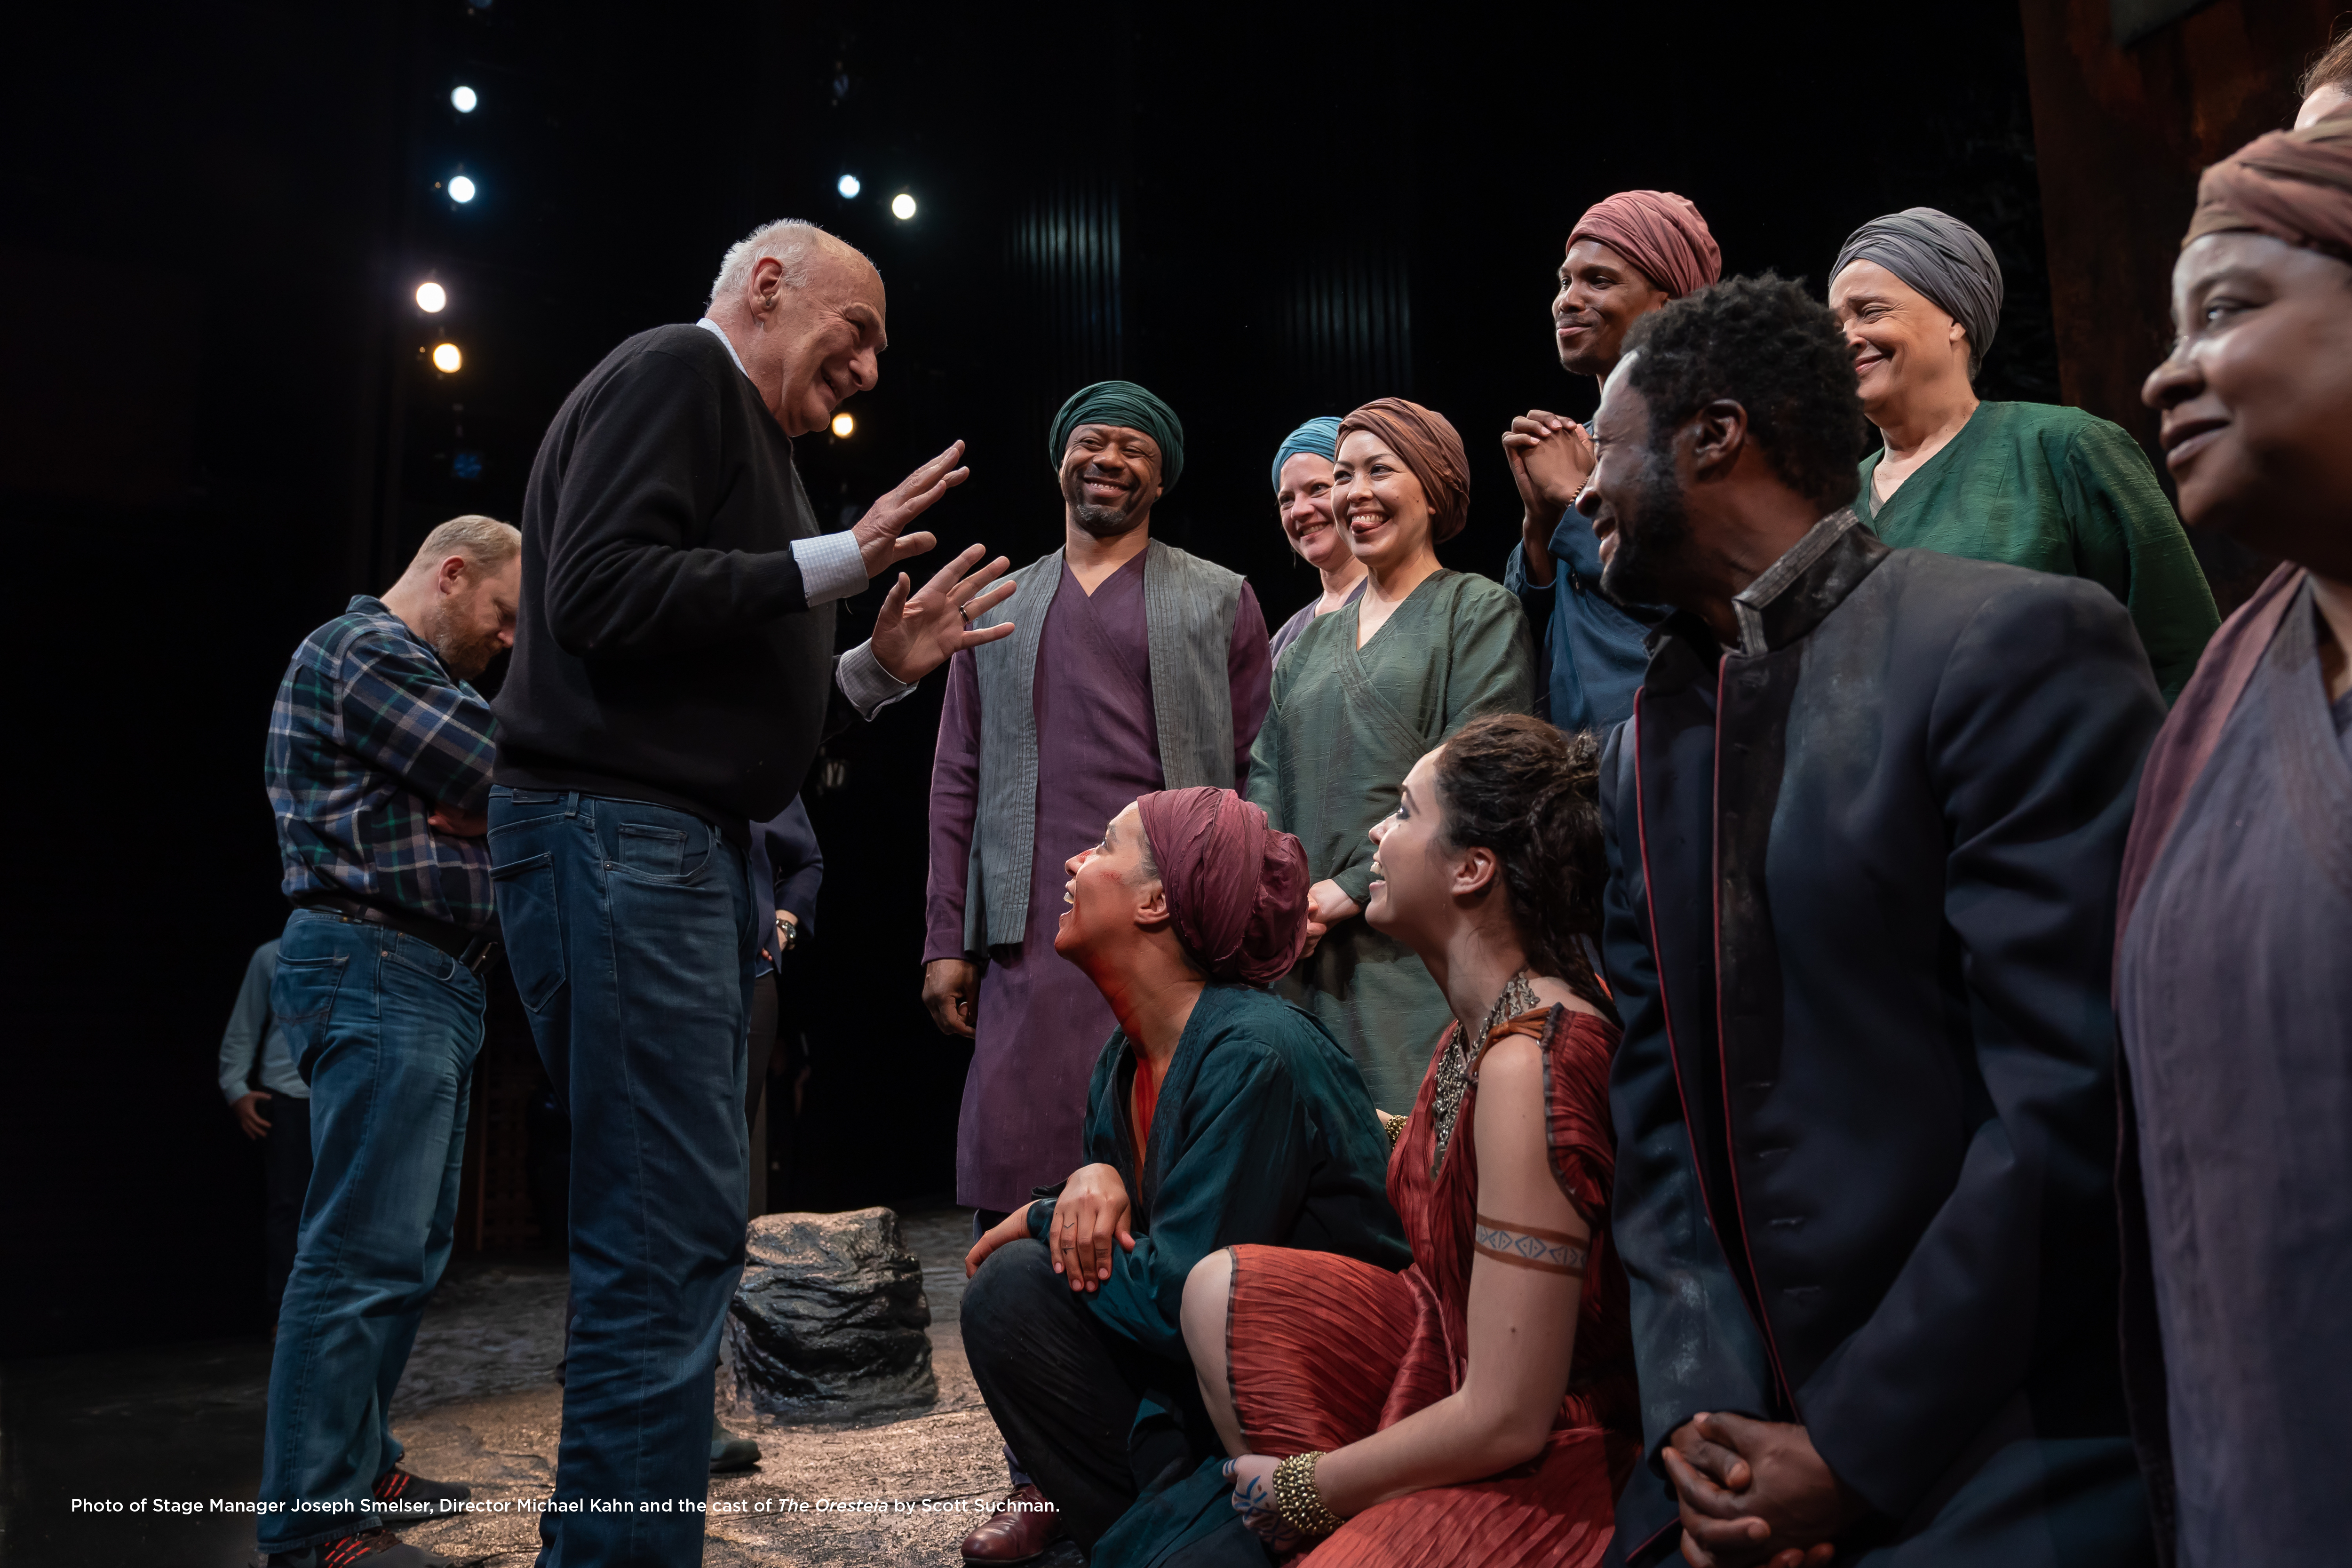 Photo of Stage Manager Joseph Smelser, Director Michael Kahn and the cast of The Oresteia.